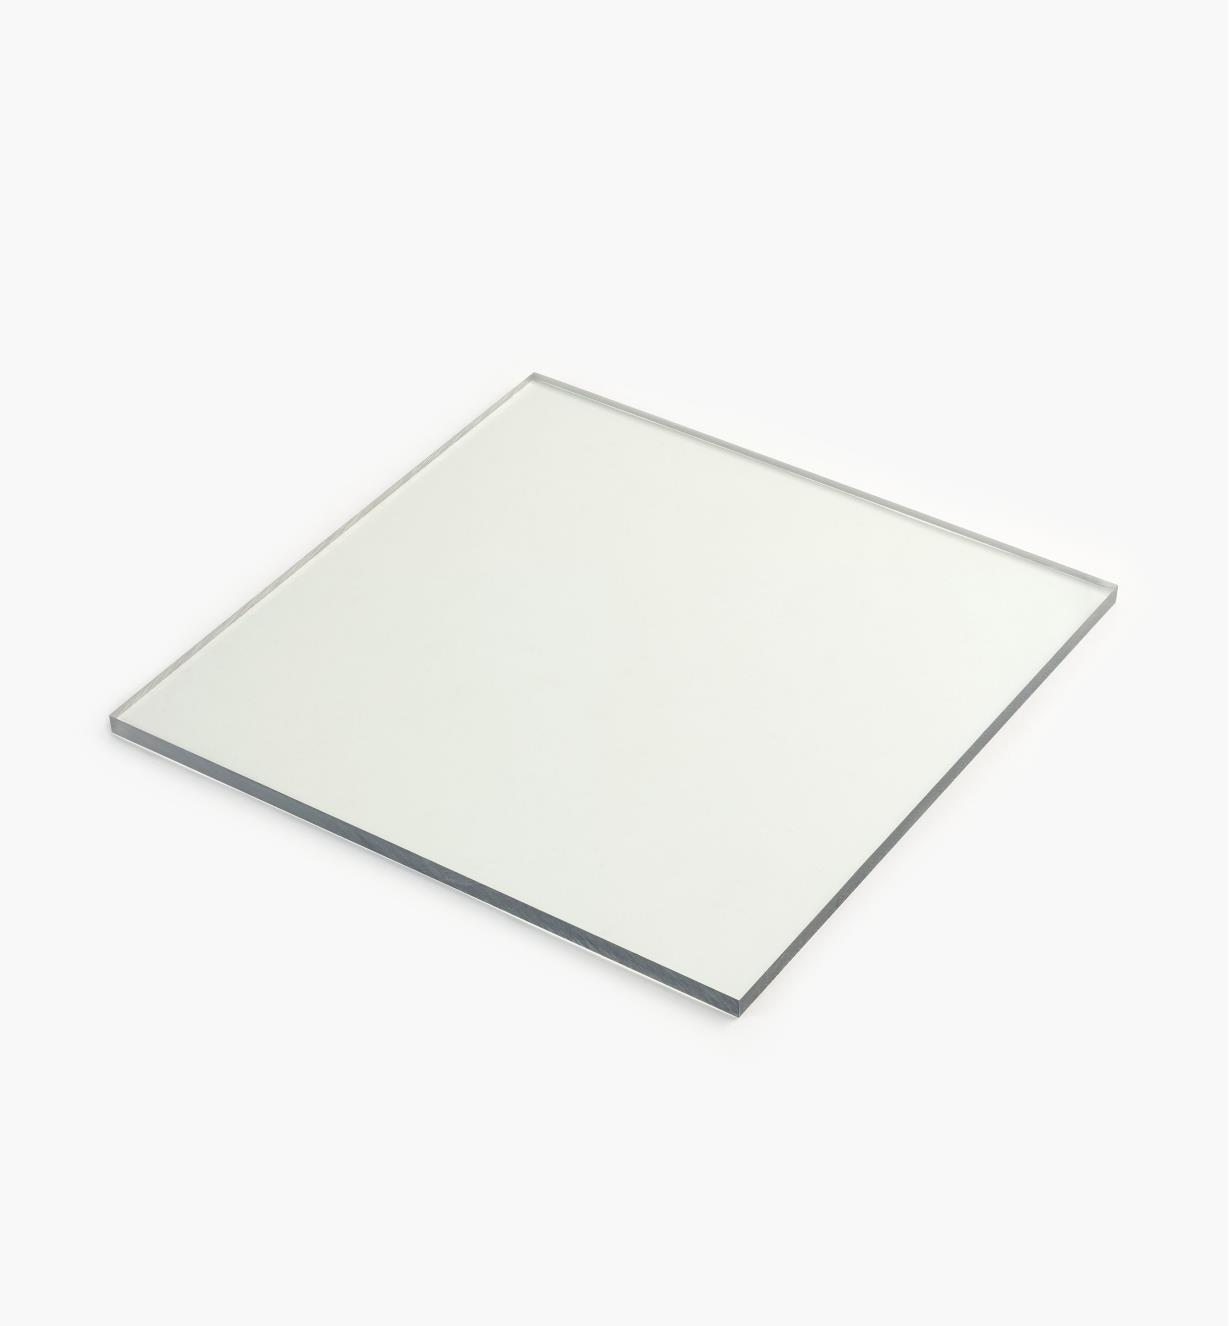 "46J8613 - 3/8"" Polycarbonate Sheet"